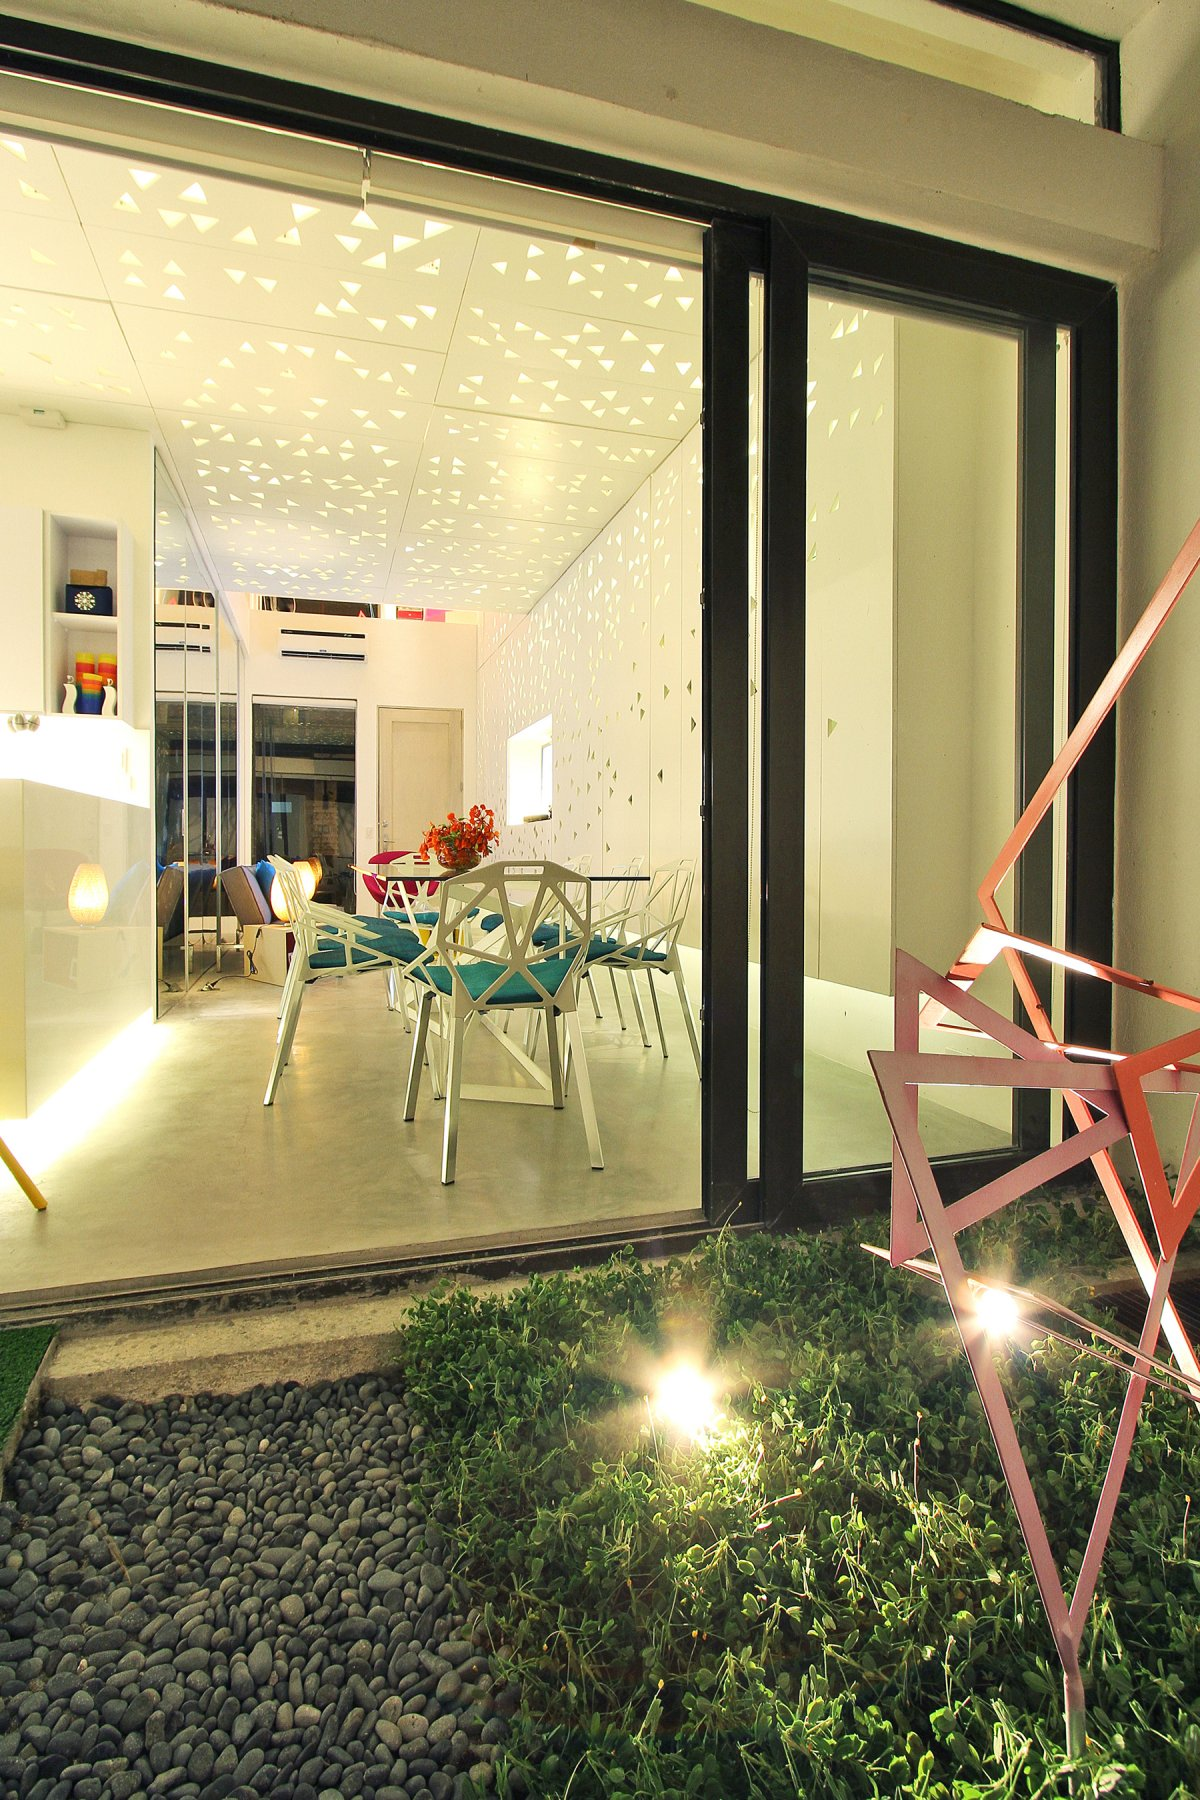 Image of: Modern Townhouse Design with Manila Based Archietctural view Small-Terrace-Garden